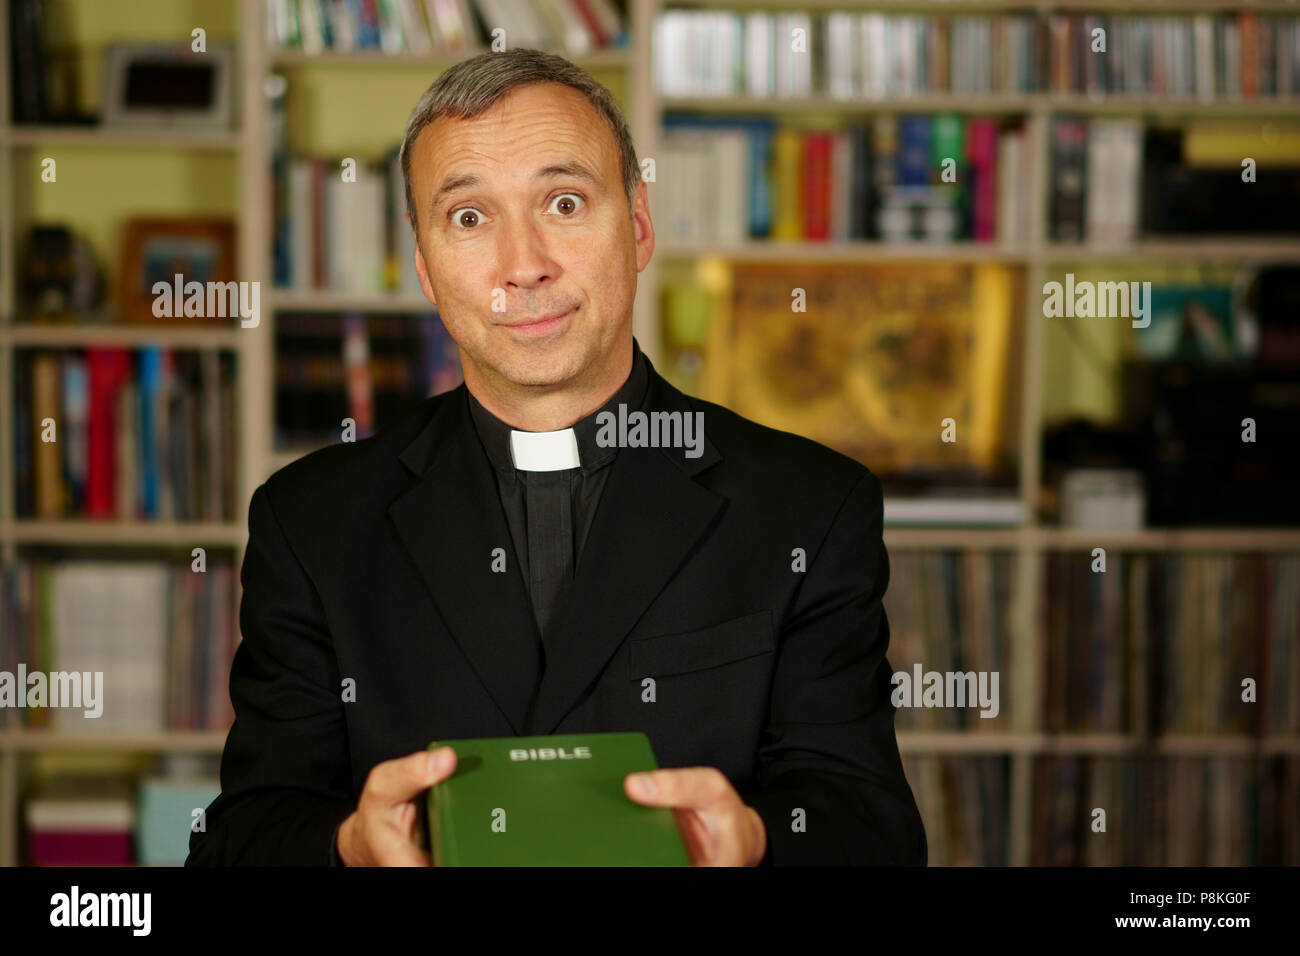 A good looking catholic priest is trying to convince us into his library. He seriously looks at us with  interest, pensiveness and proselytising. - Stock Image